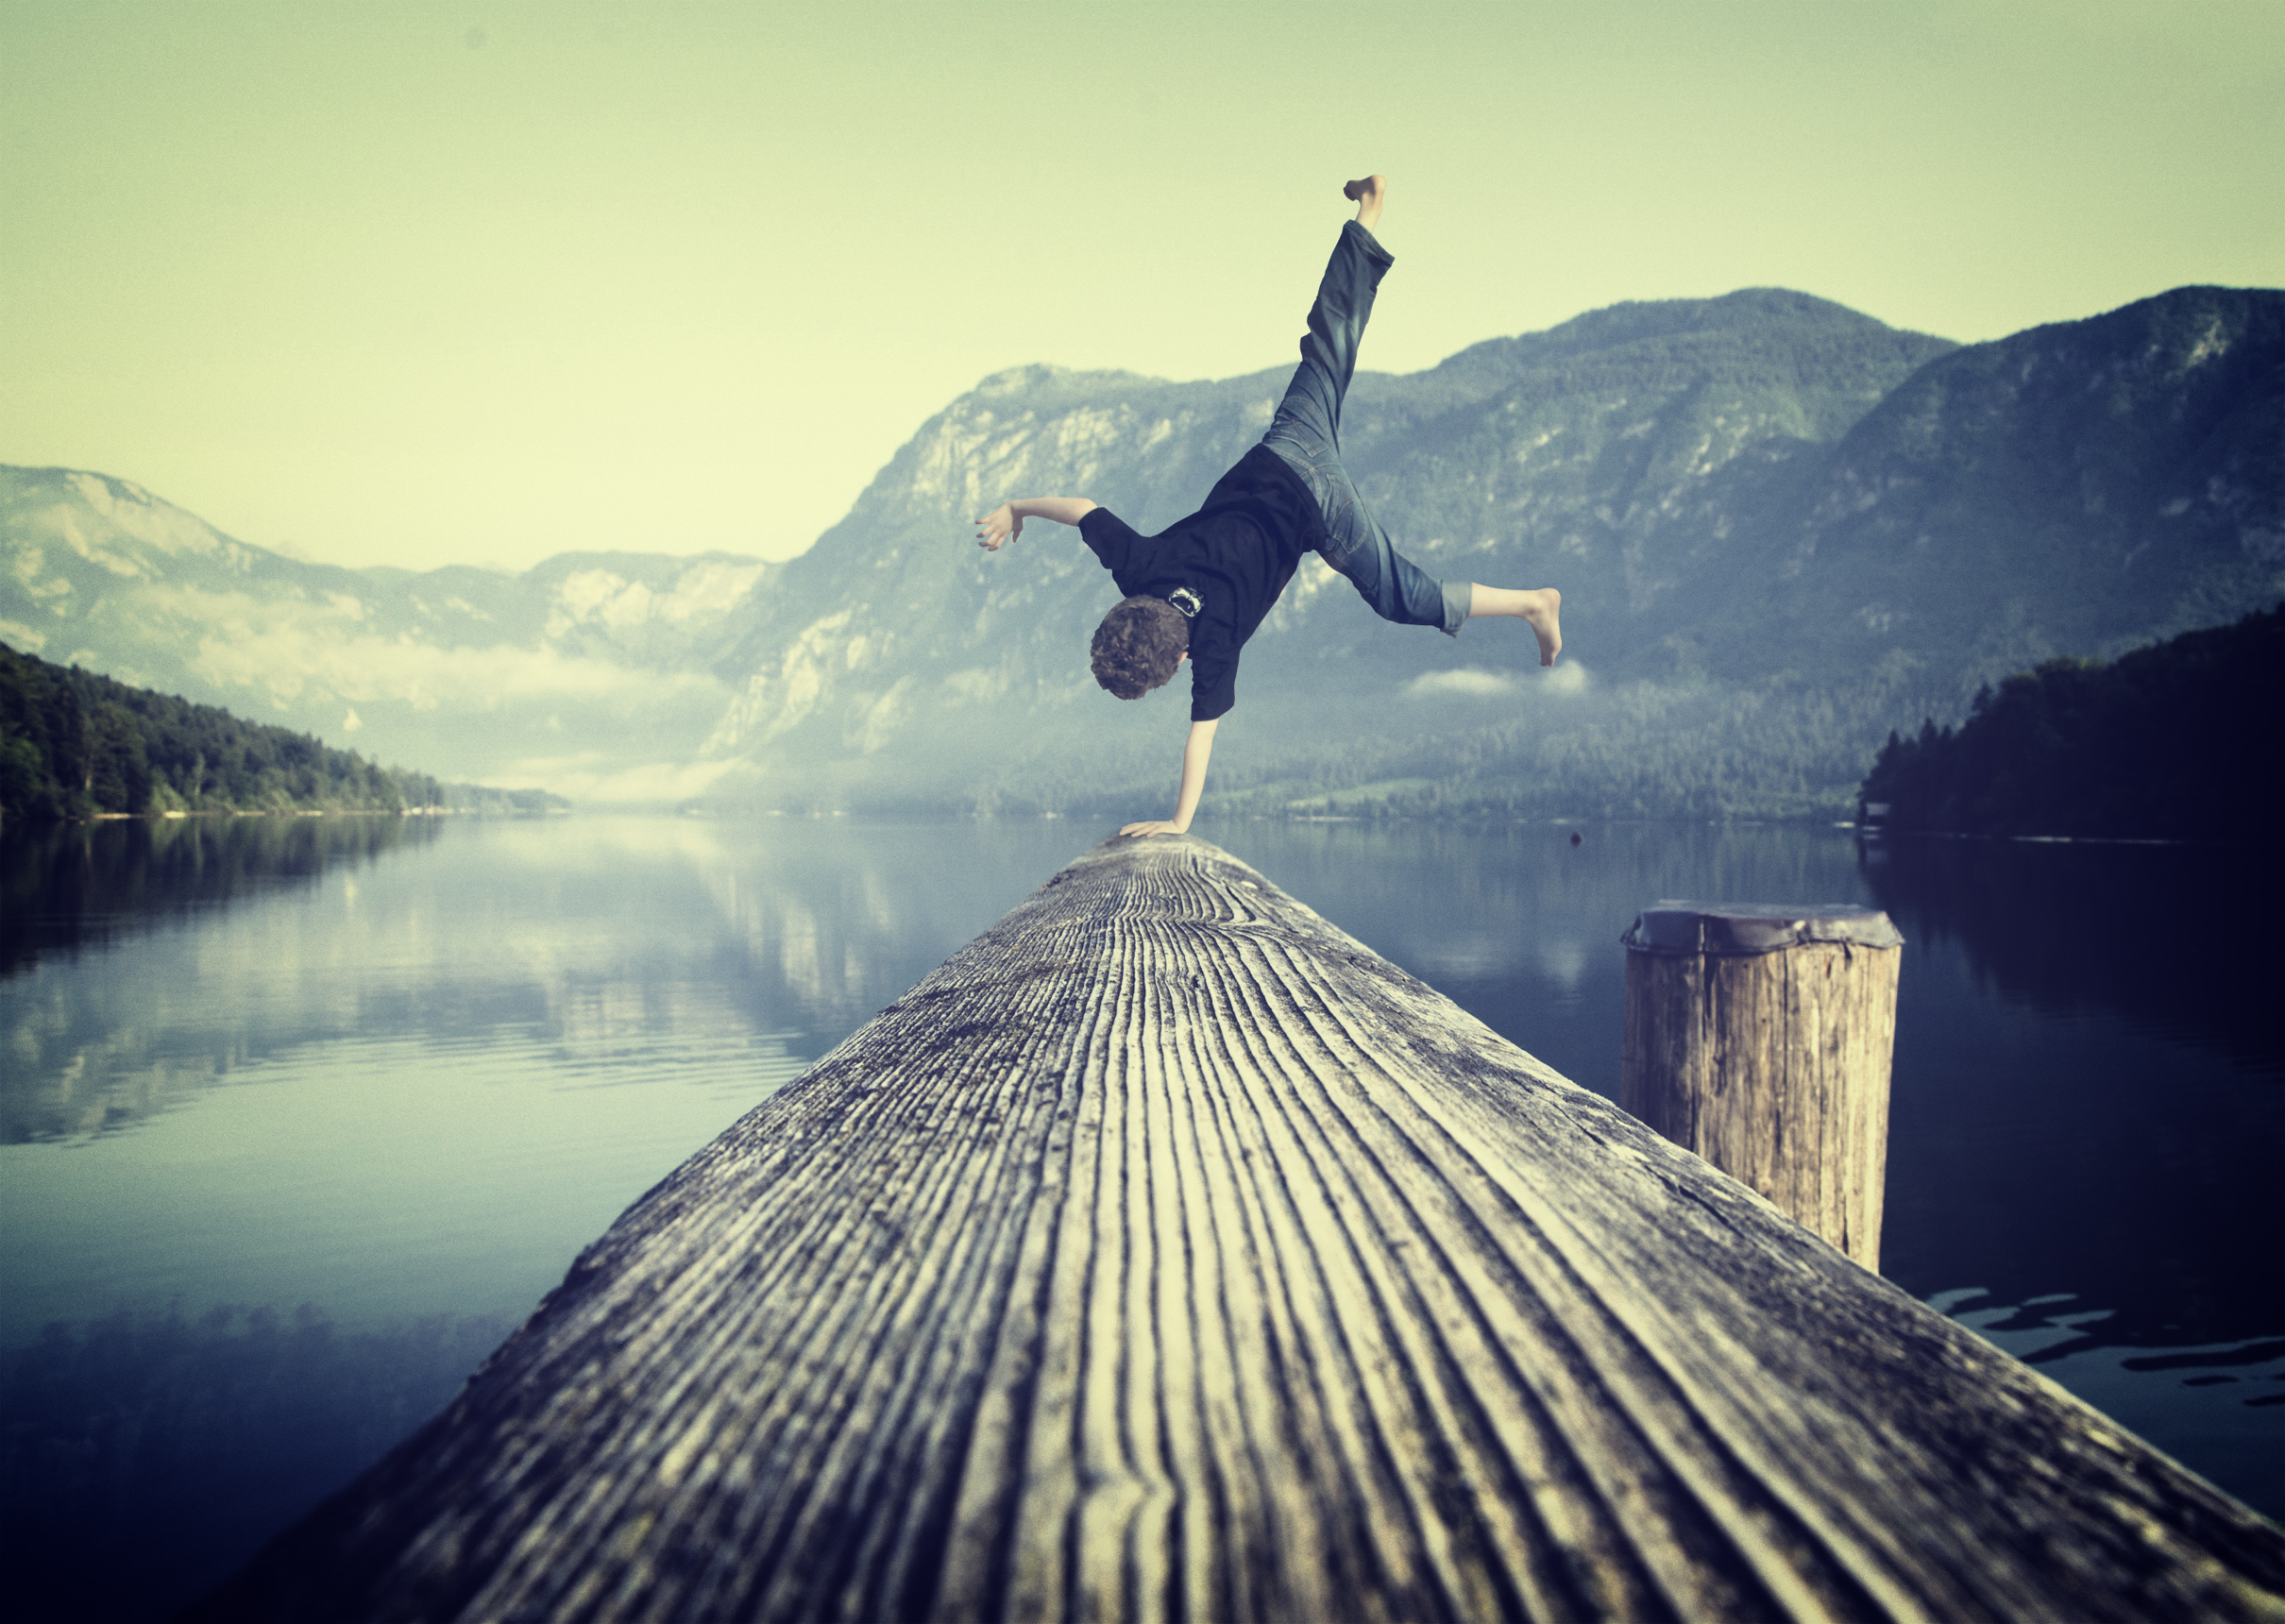 Young boy handstanding on jetty photo